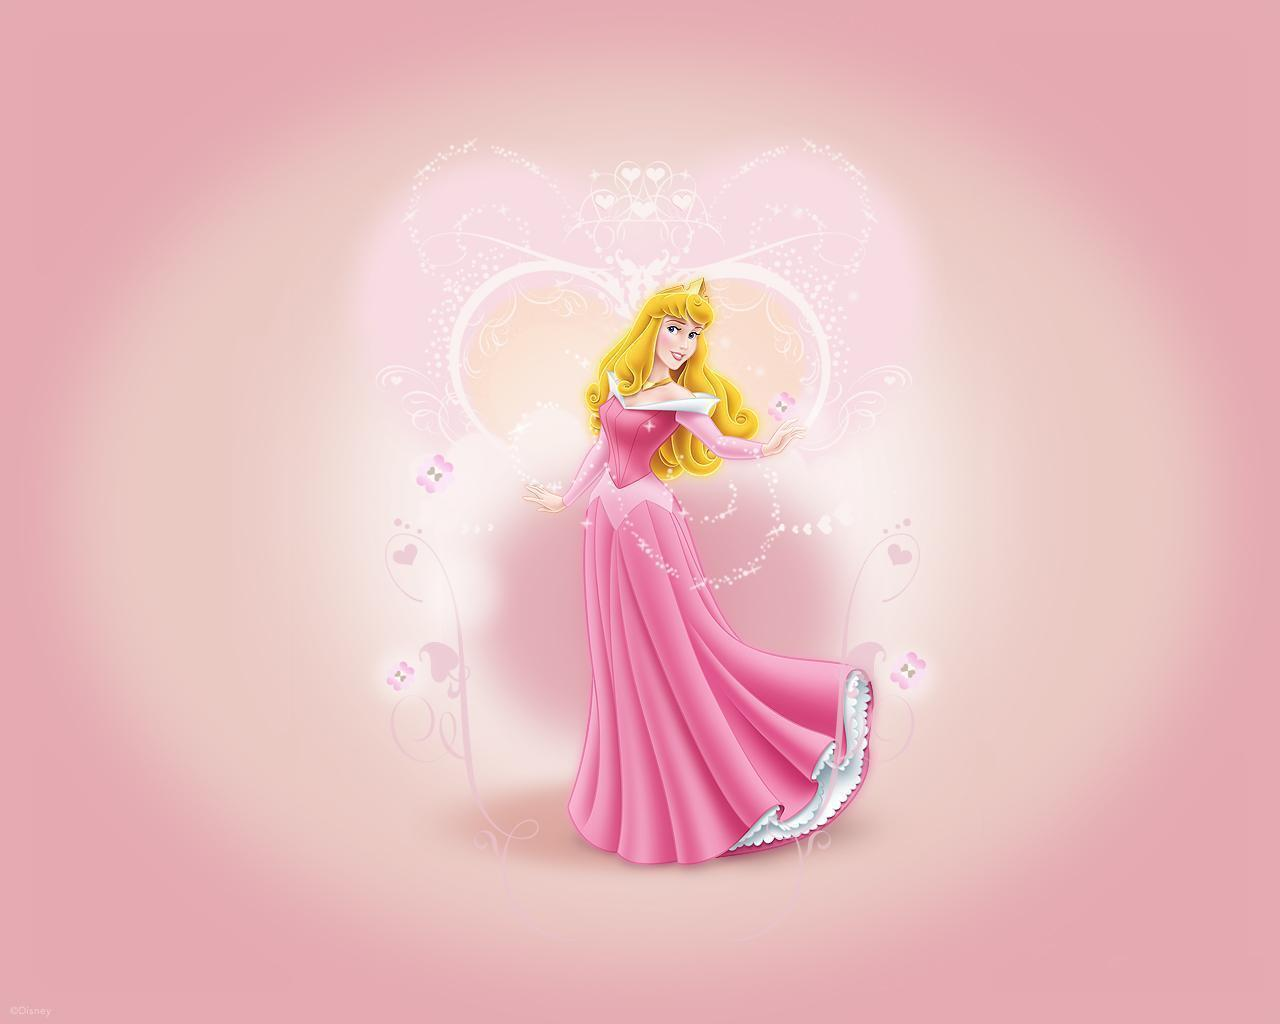 Disney Princess Aurora Wallpapers